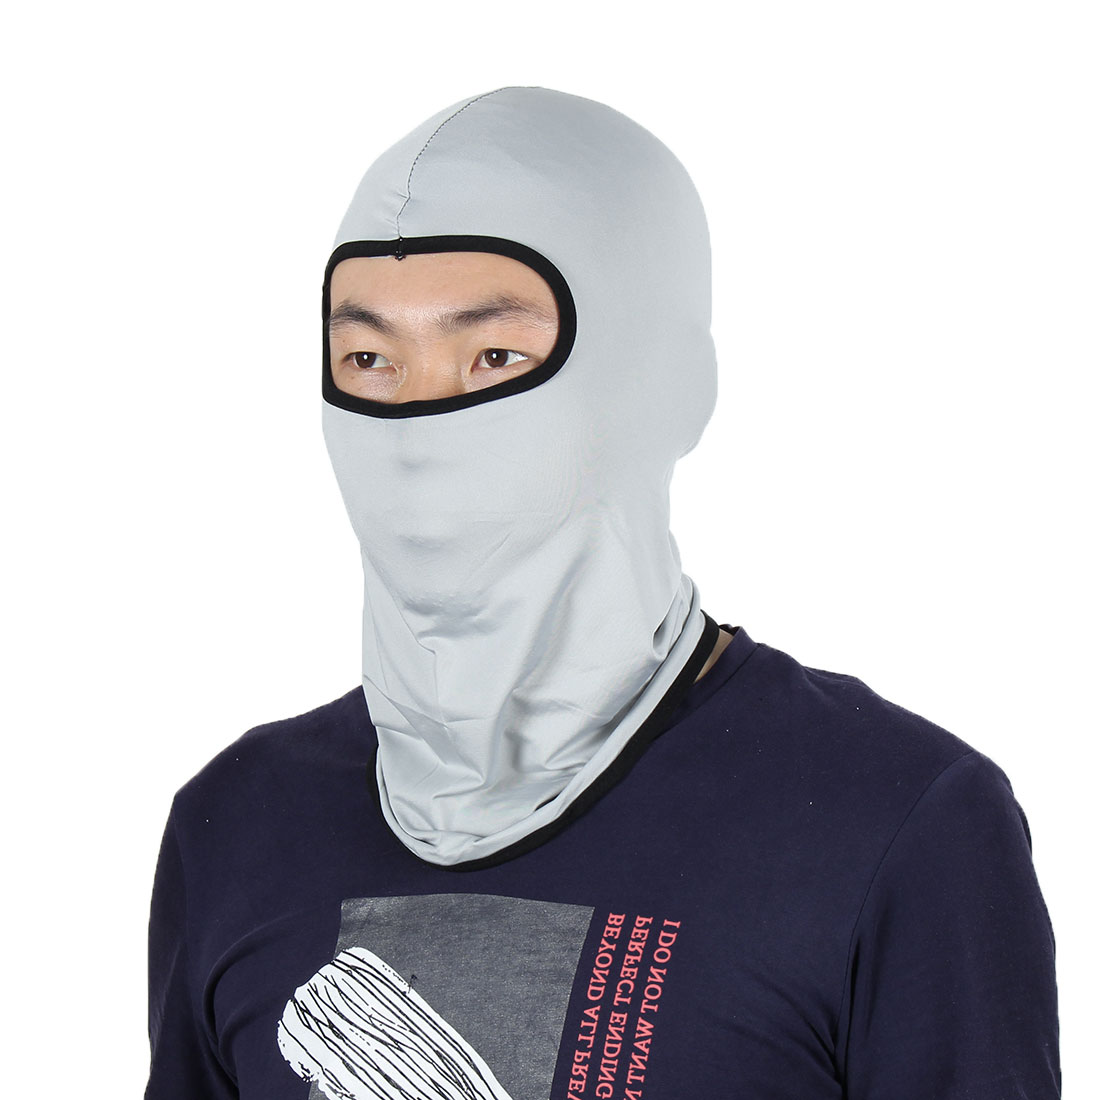 Full Face Mask Outdoor Activities Cycling Biking Neck Hat Helmet Balaclava Gray